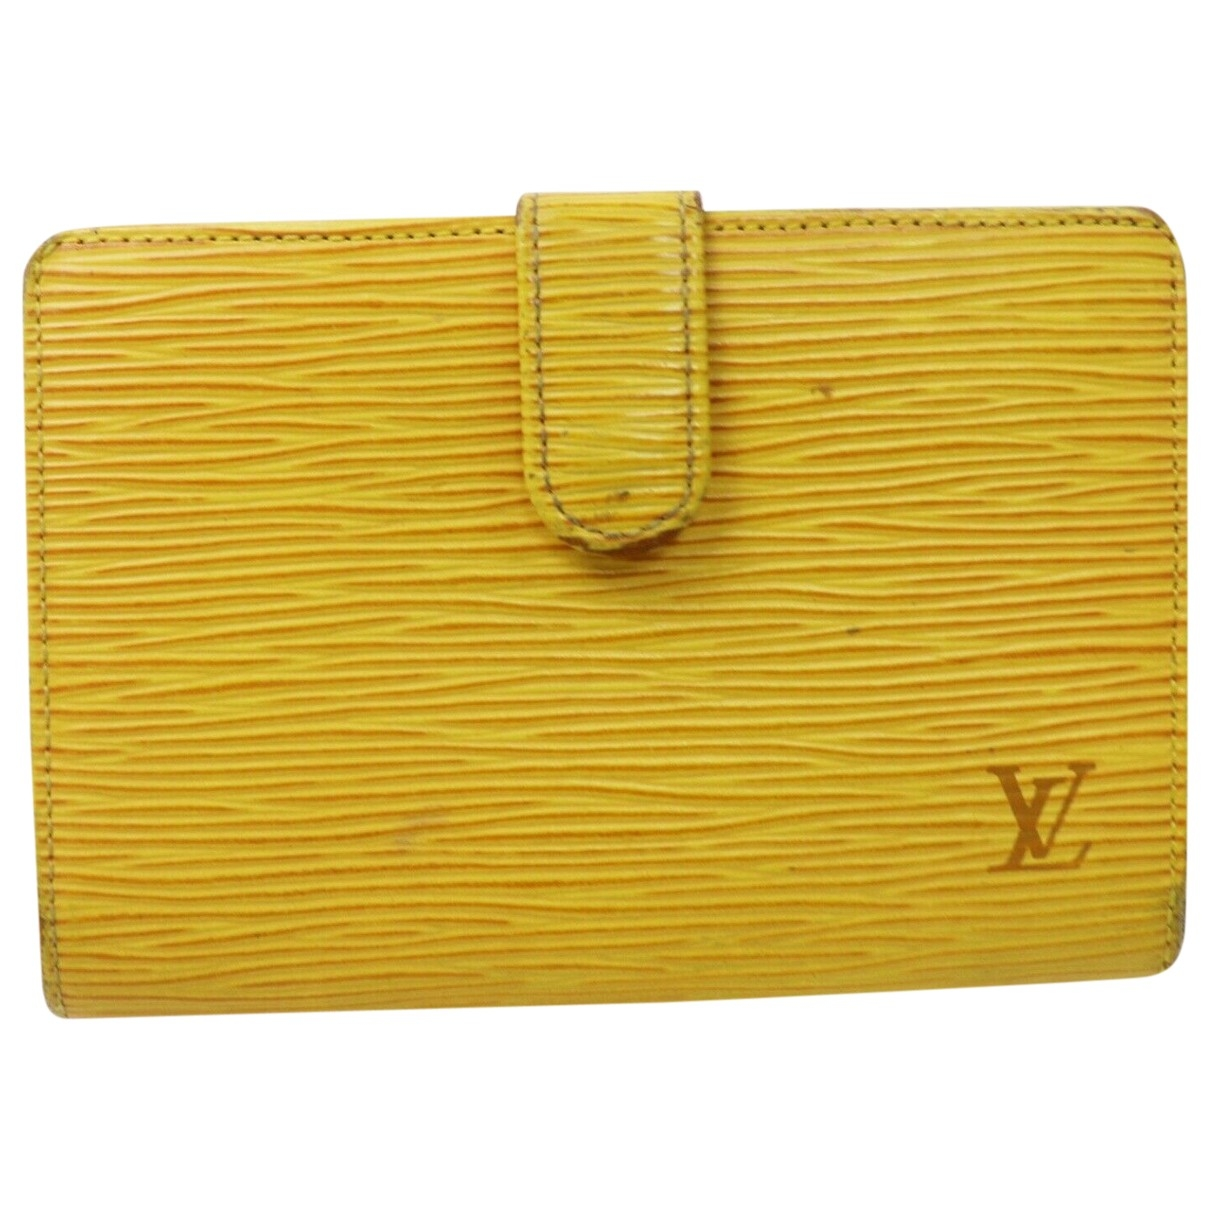 Cartera de Cuero Louis Vuitton